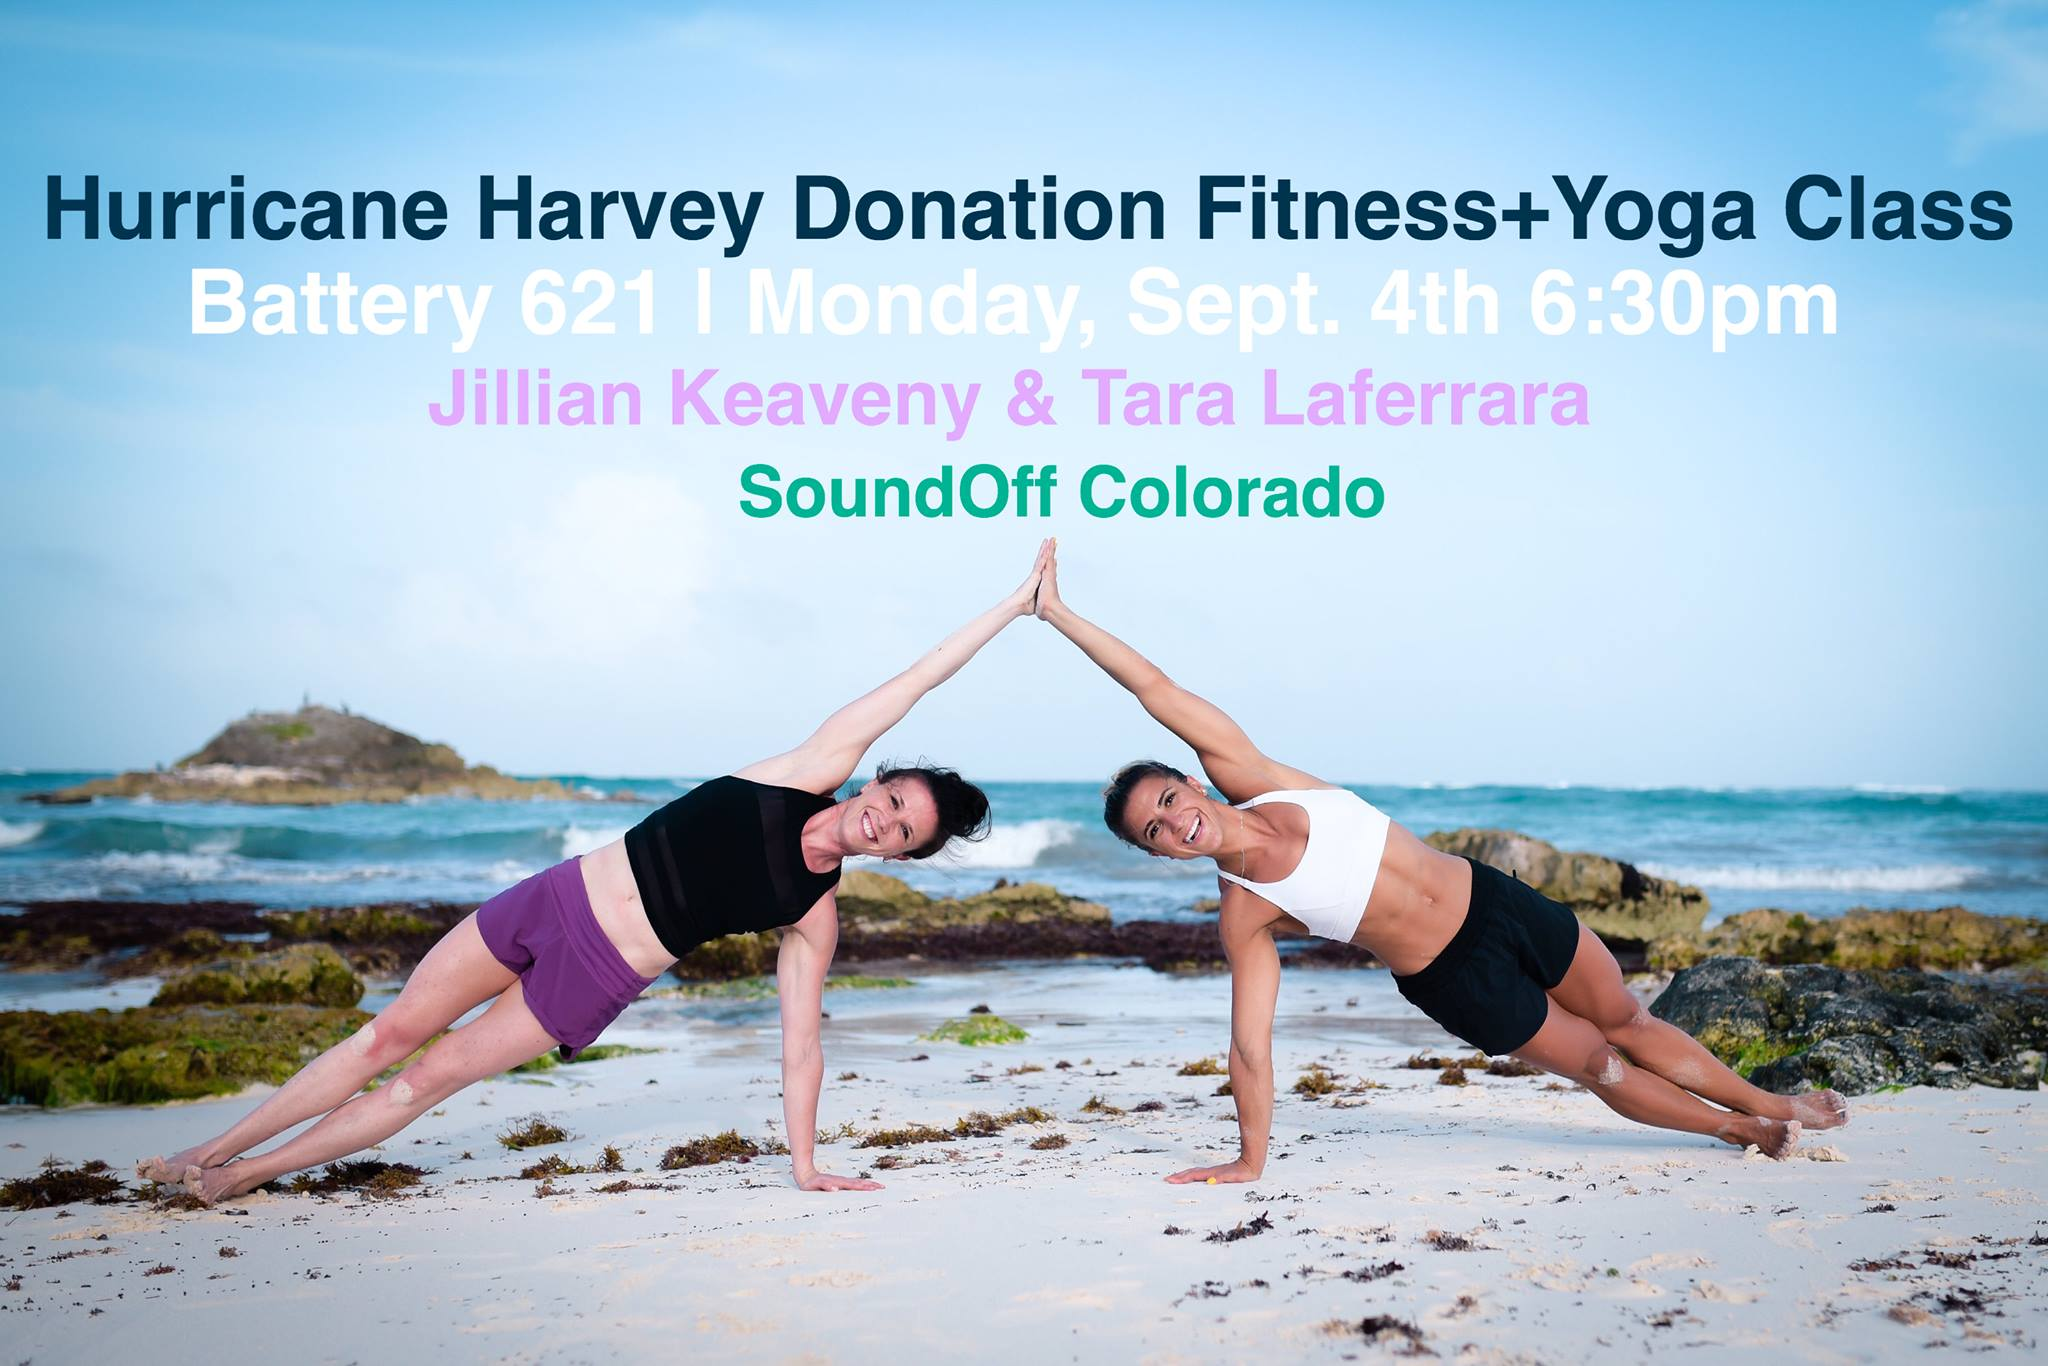 Hurricane Harvey Donation Yoga